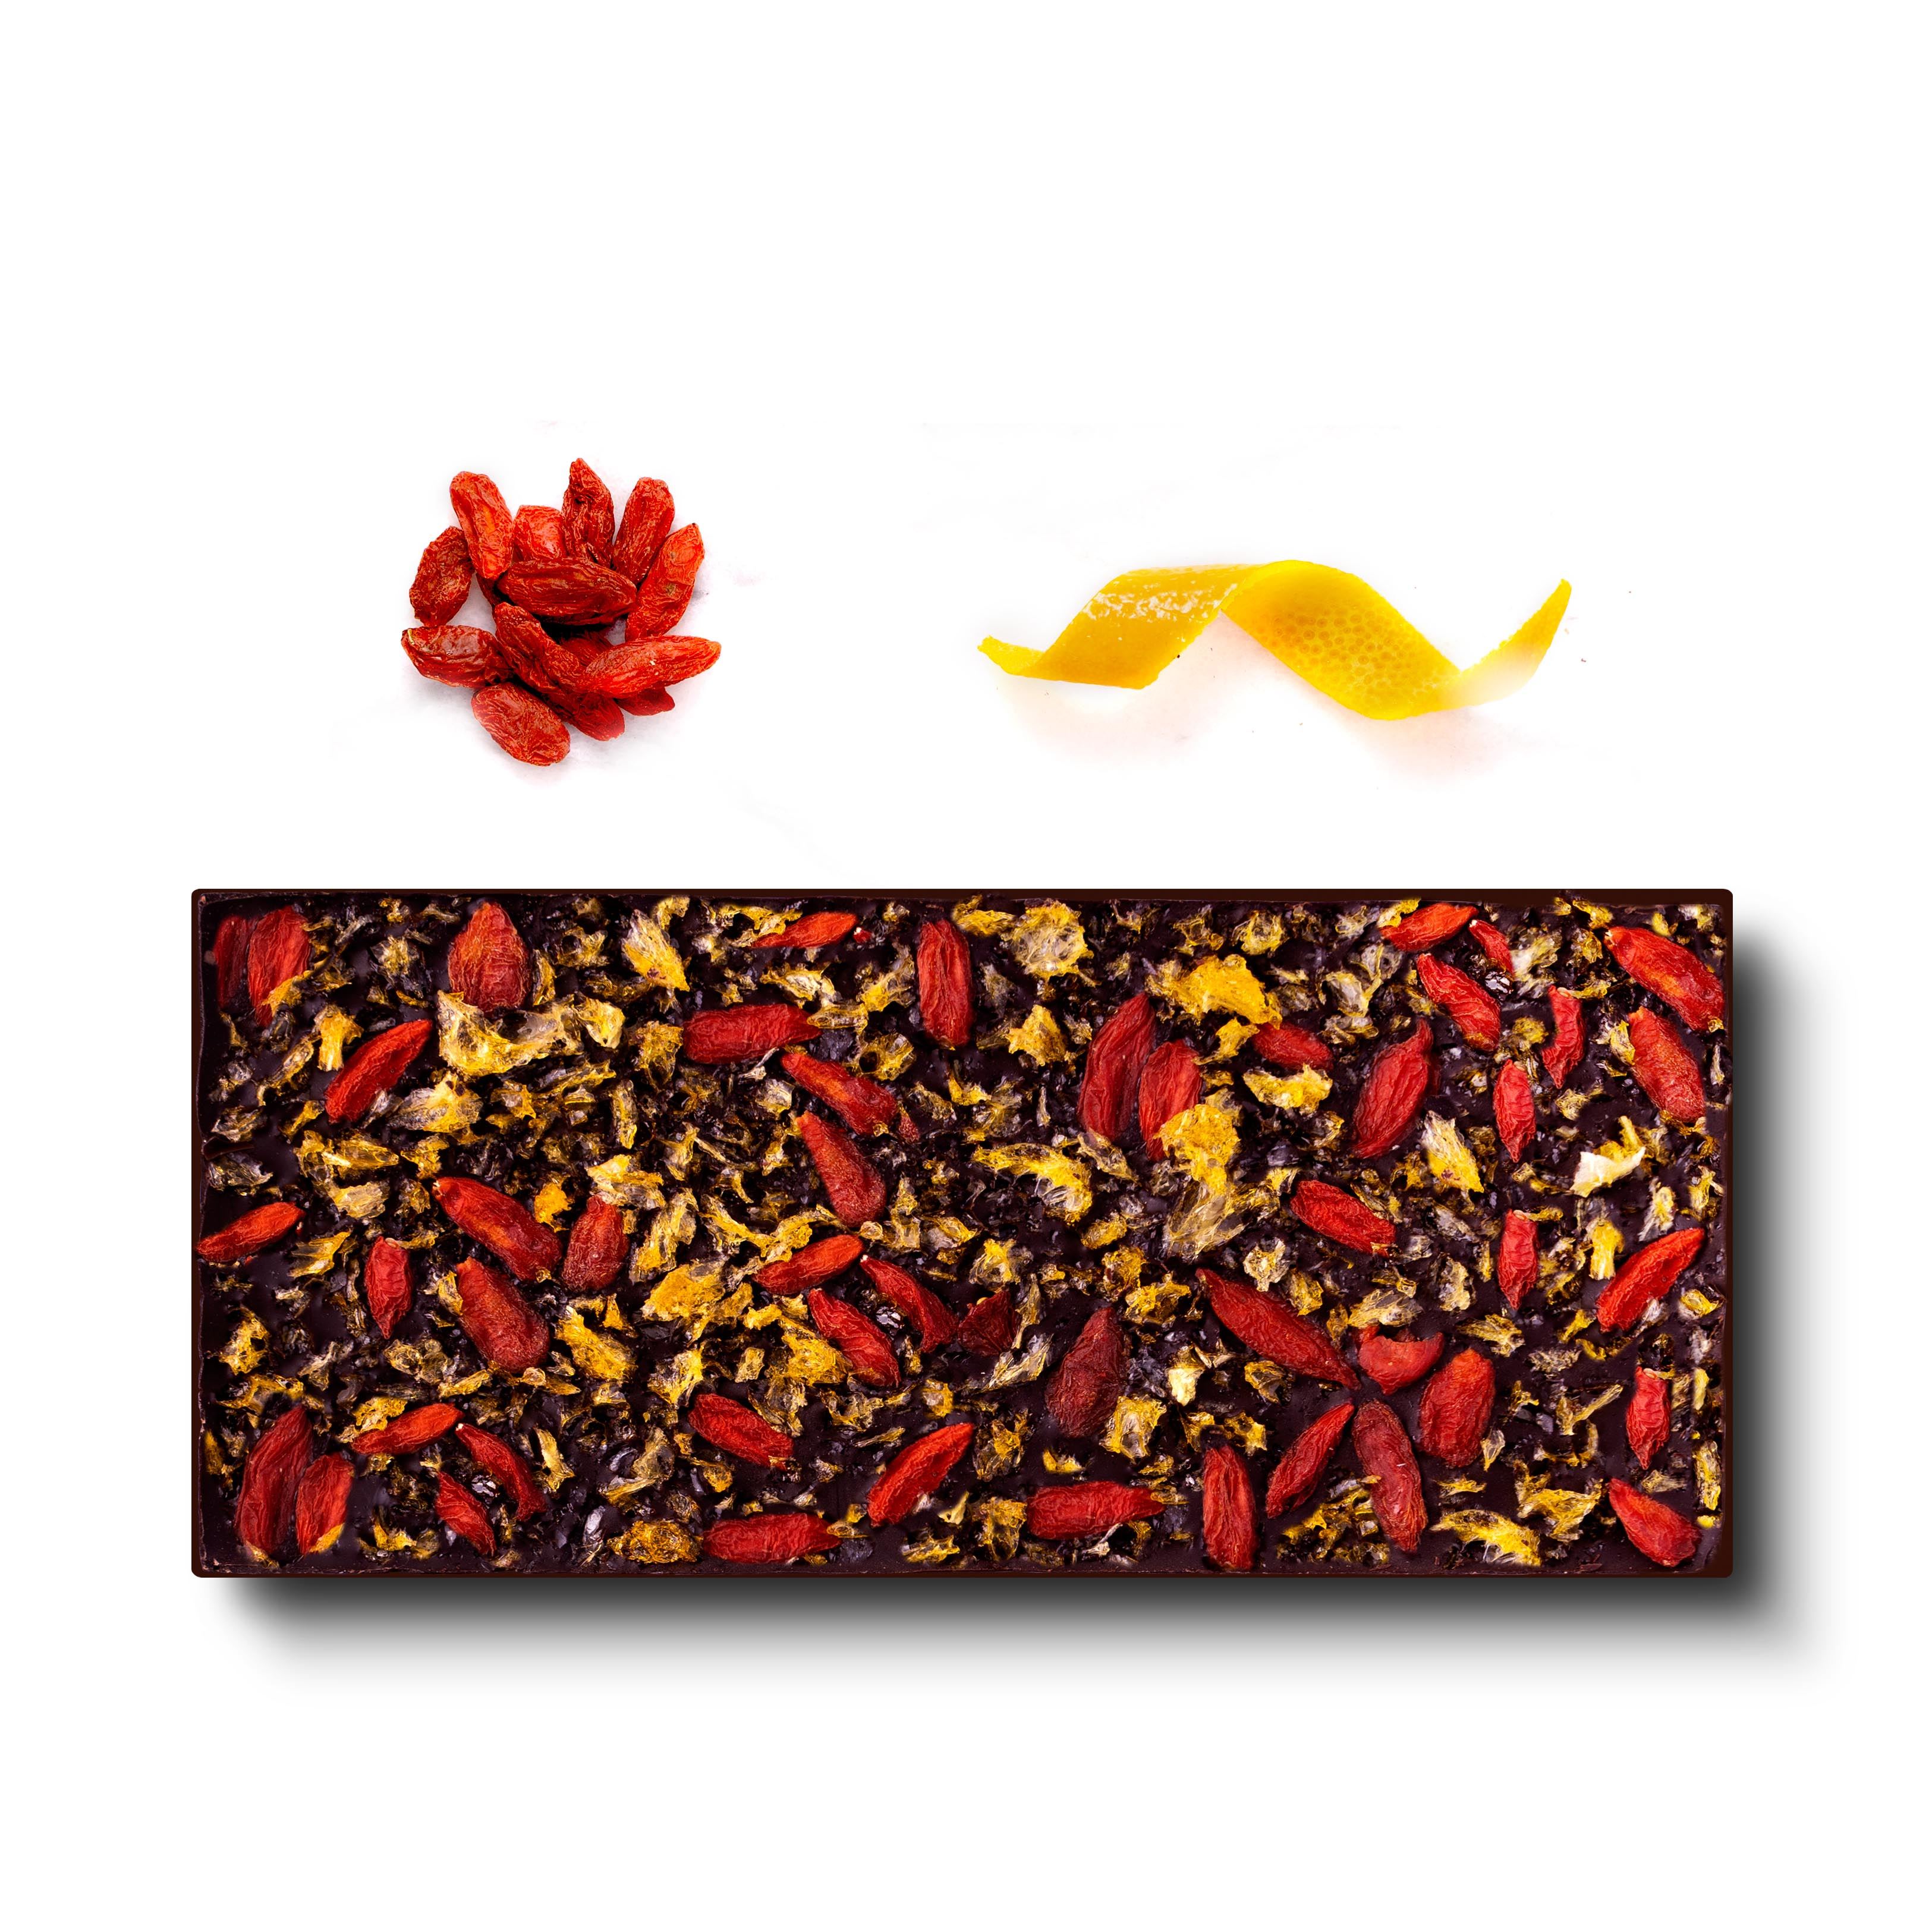 French Dark Chocolate - Beijing (Goji Berries and Mandarin Orange) - Flair Chocolatier